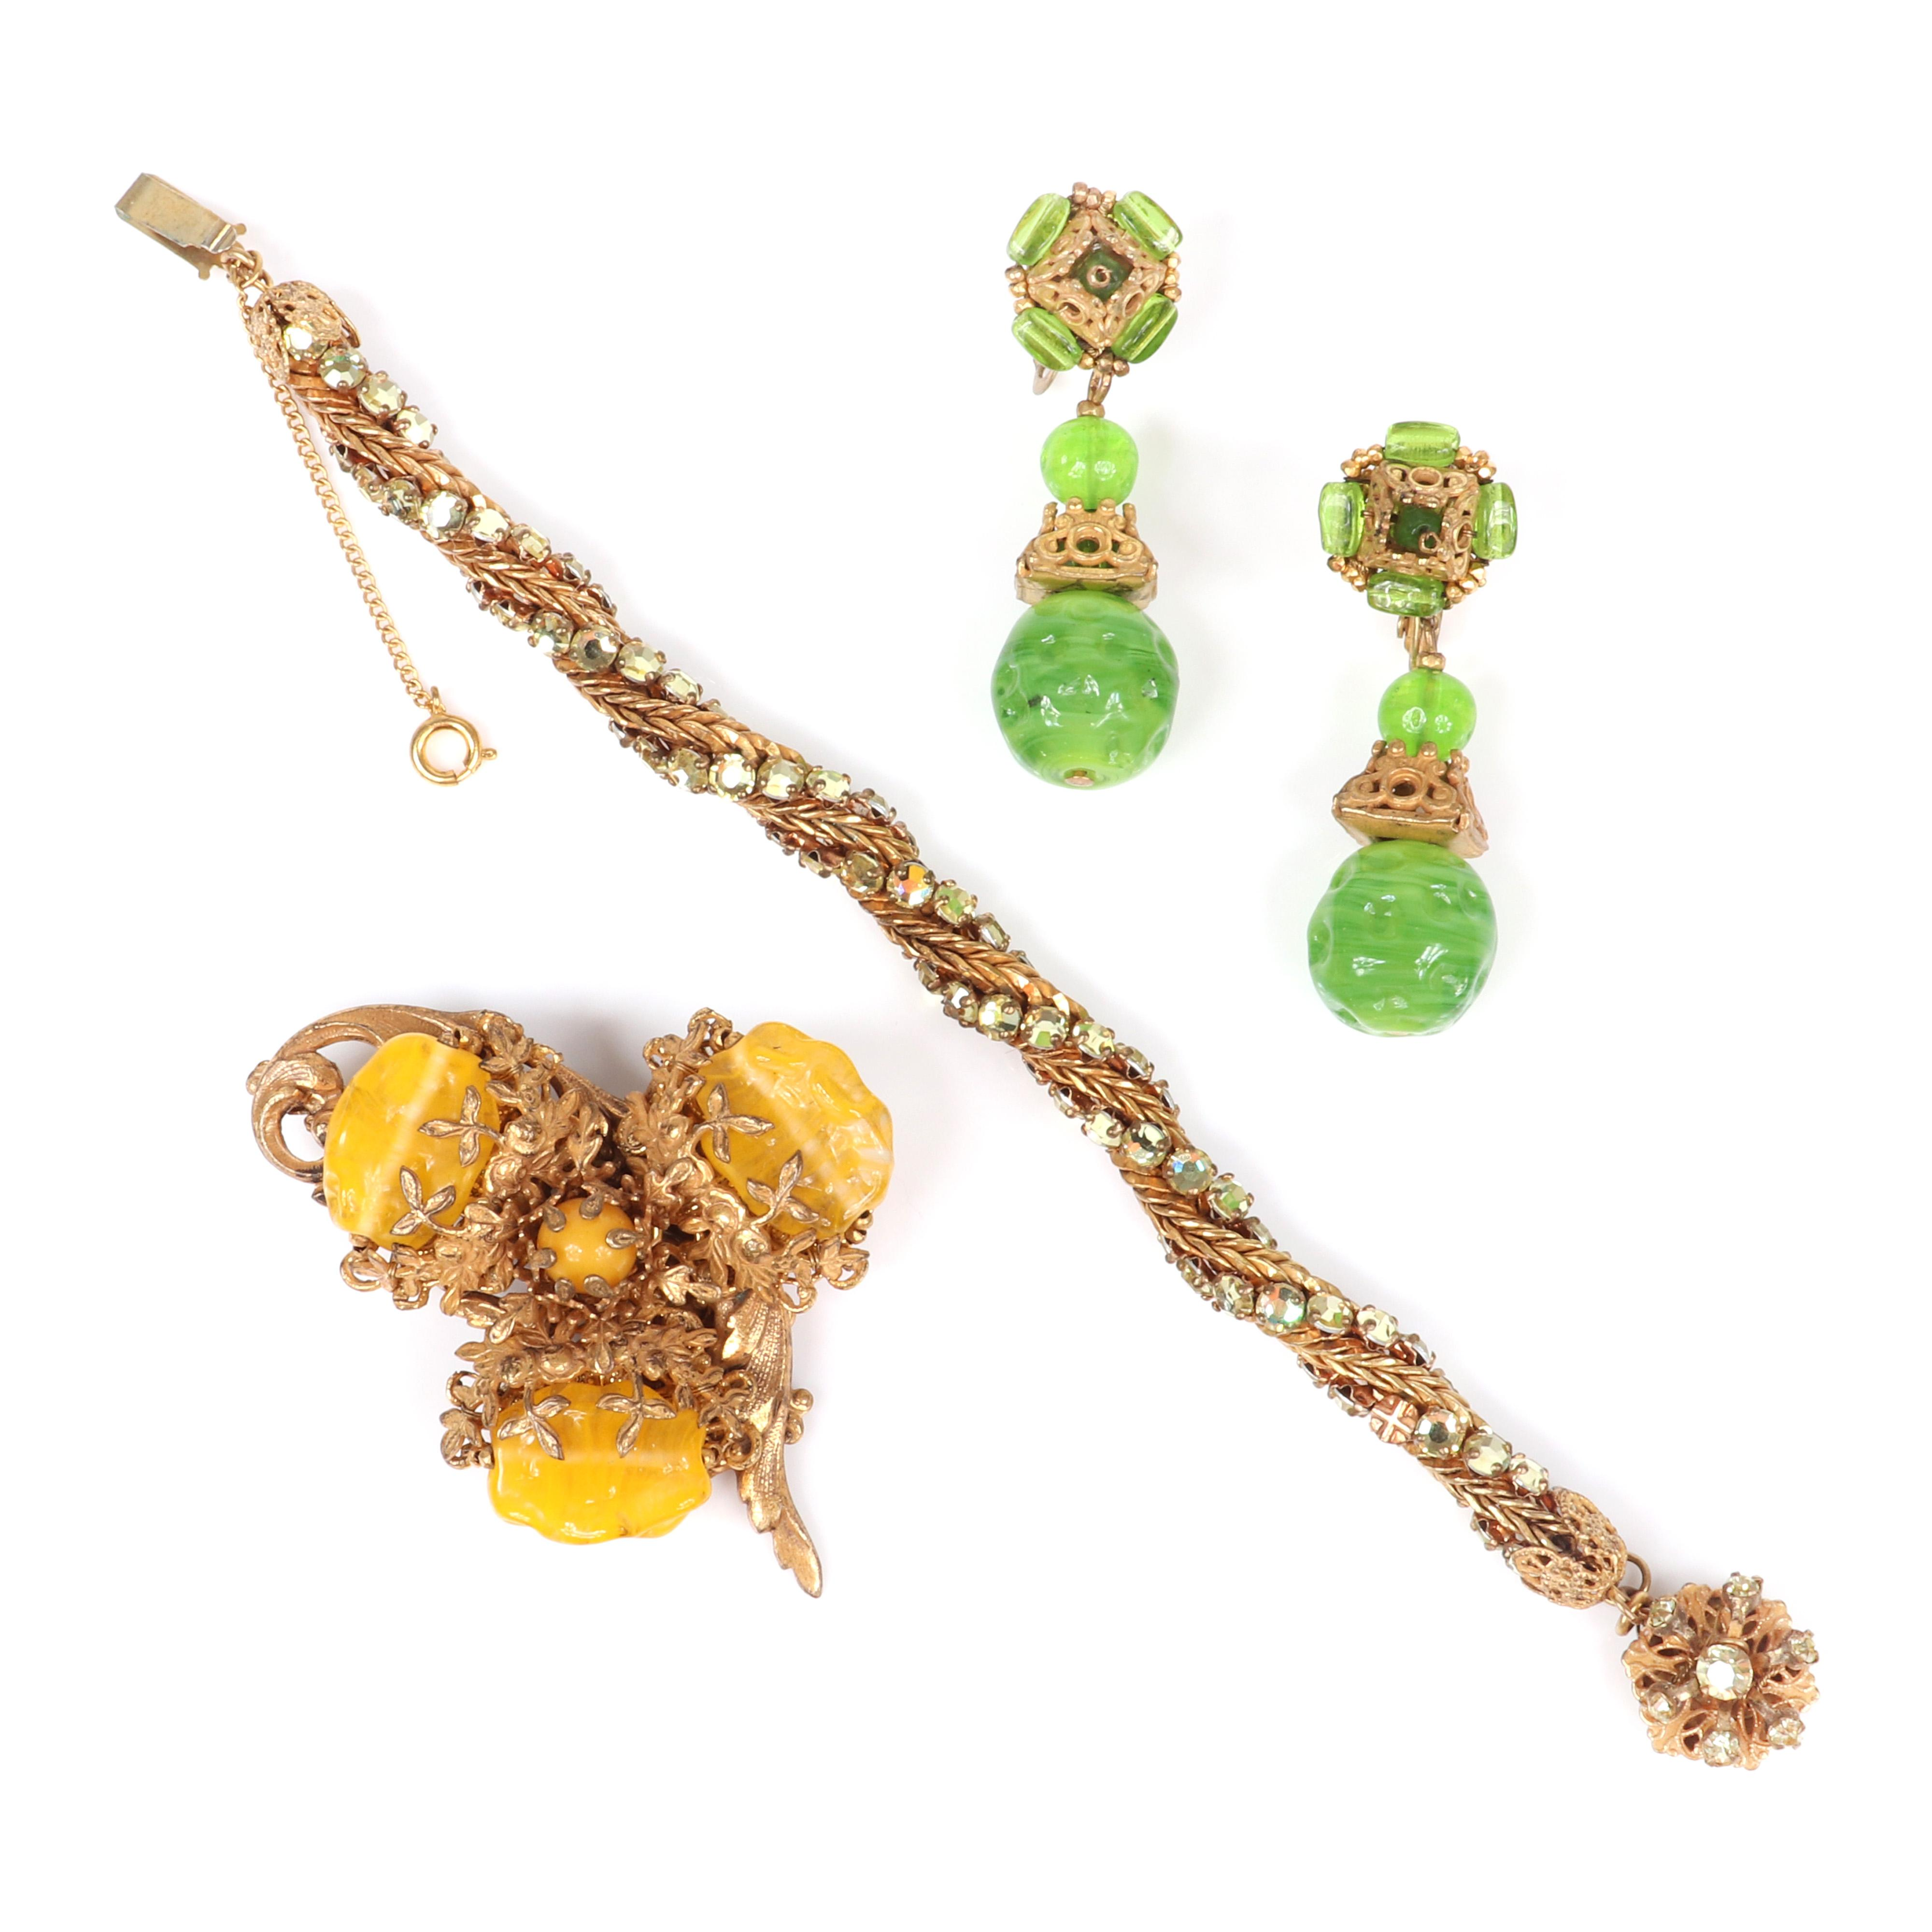 "Miriam Haskell group with twisted chain and citrine rhinestone bracelet, molded marbled glass bead drop earrings and brooch with yellow molded glass beads. 7 1/2""L (bracelet)"